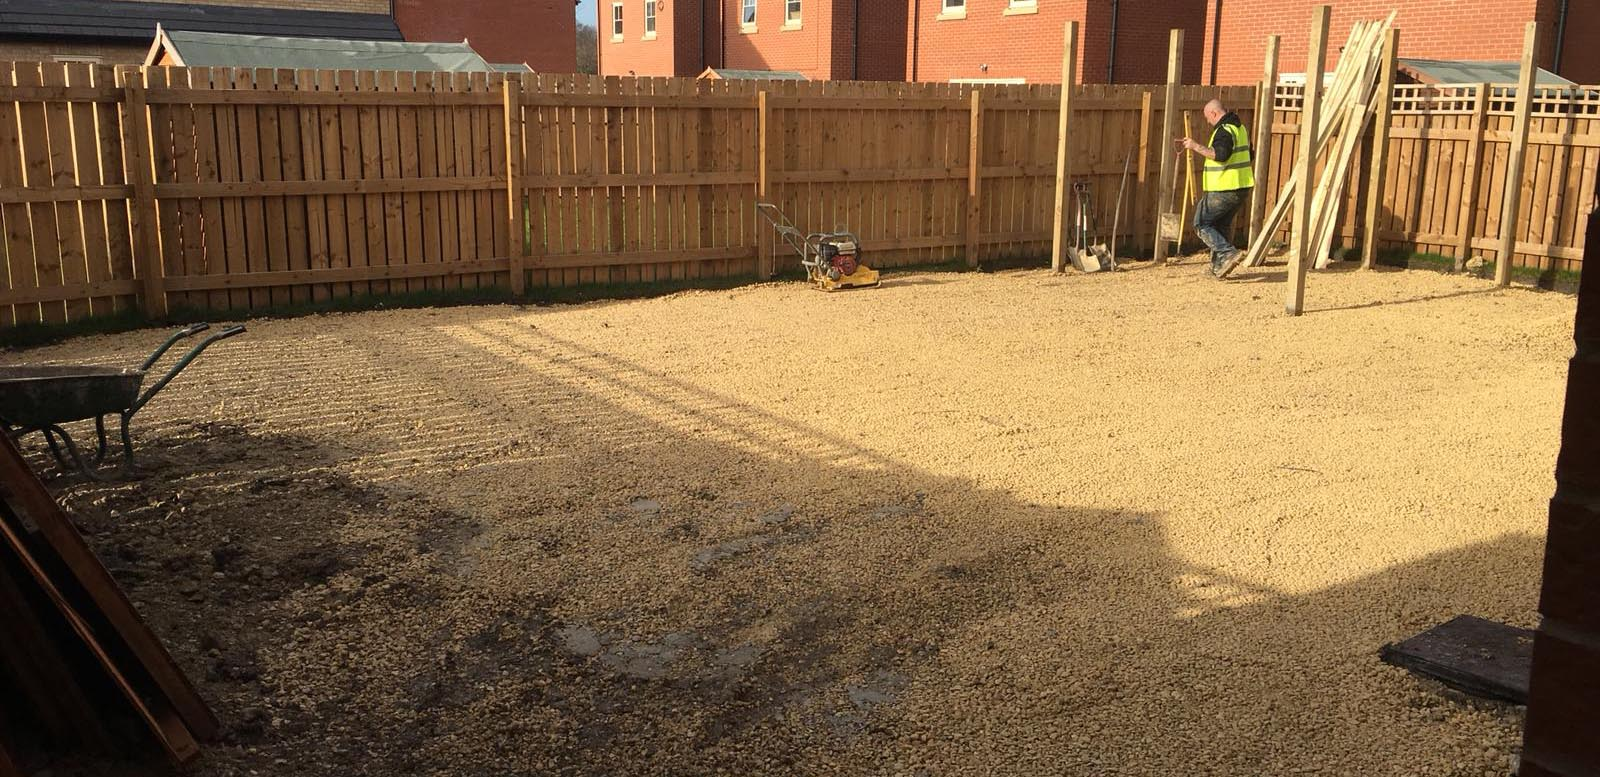 Landscaping before project took place